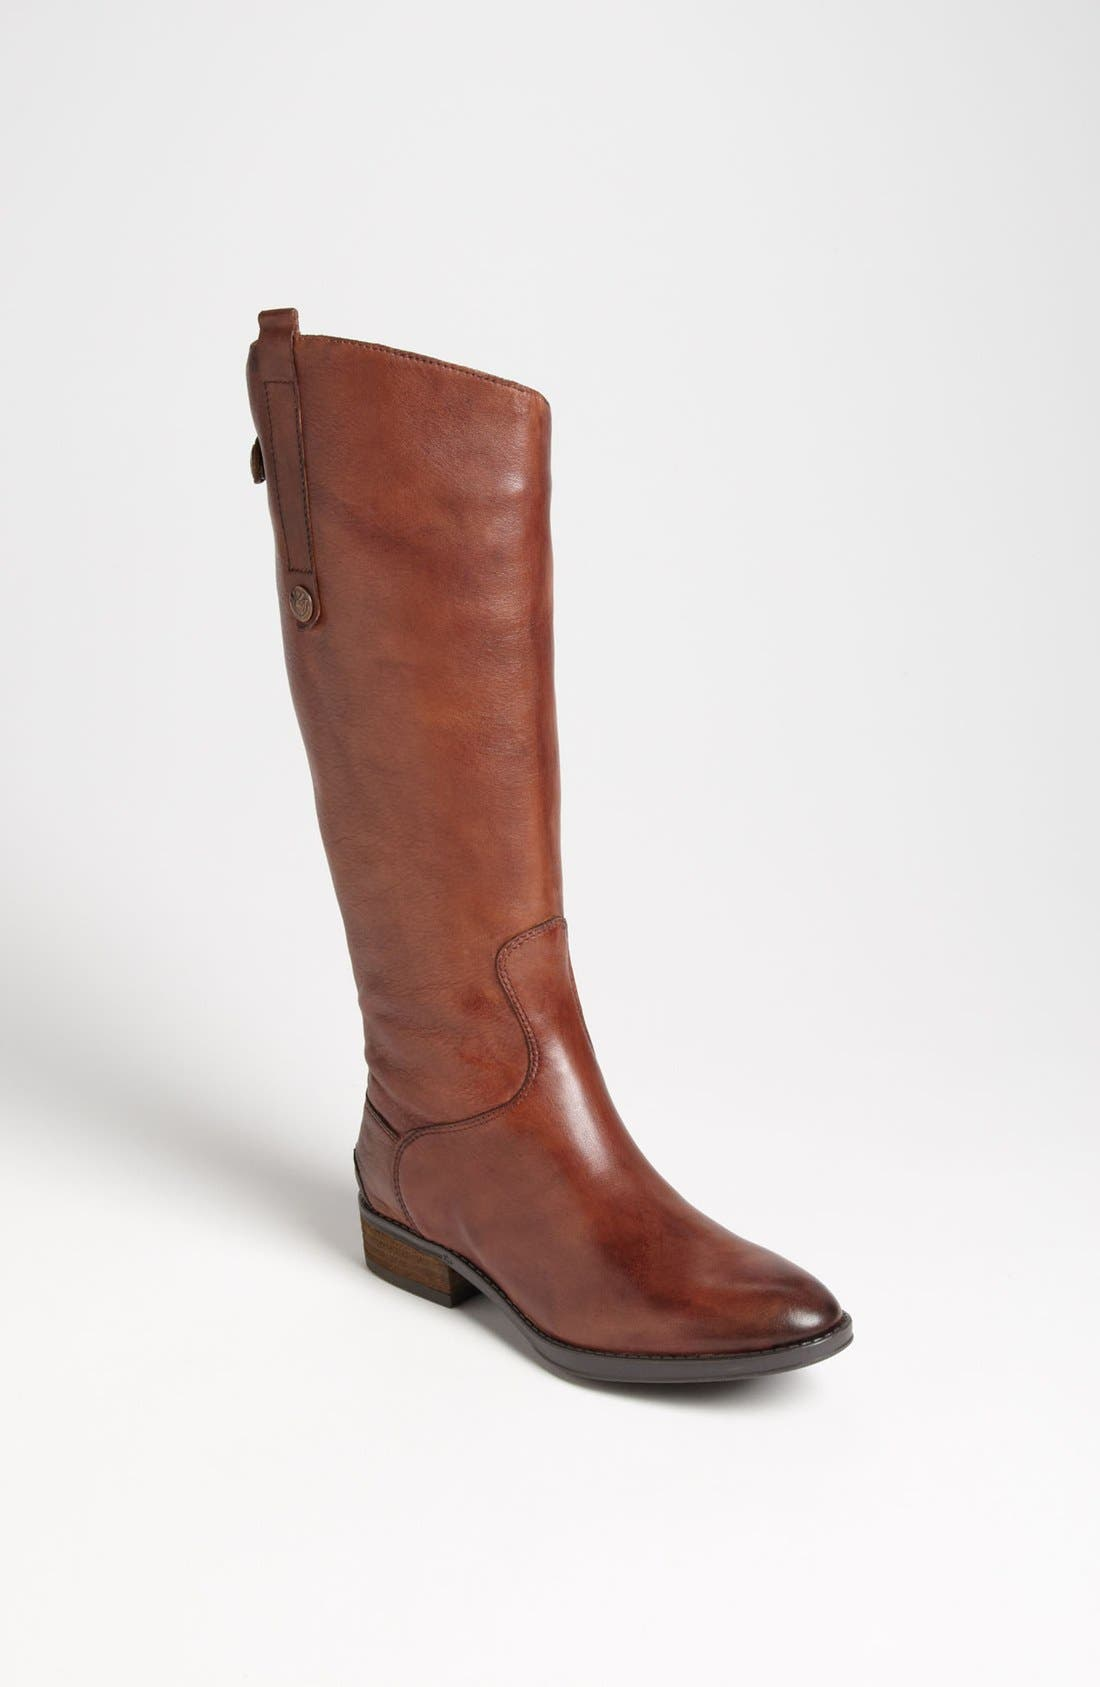 Main Image - Sam Edelman 'Penny' Boot (Women) (Wide Calf)